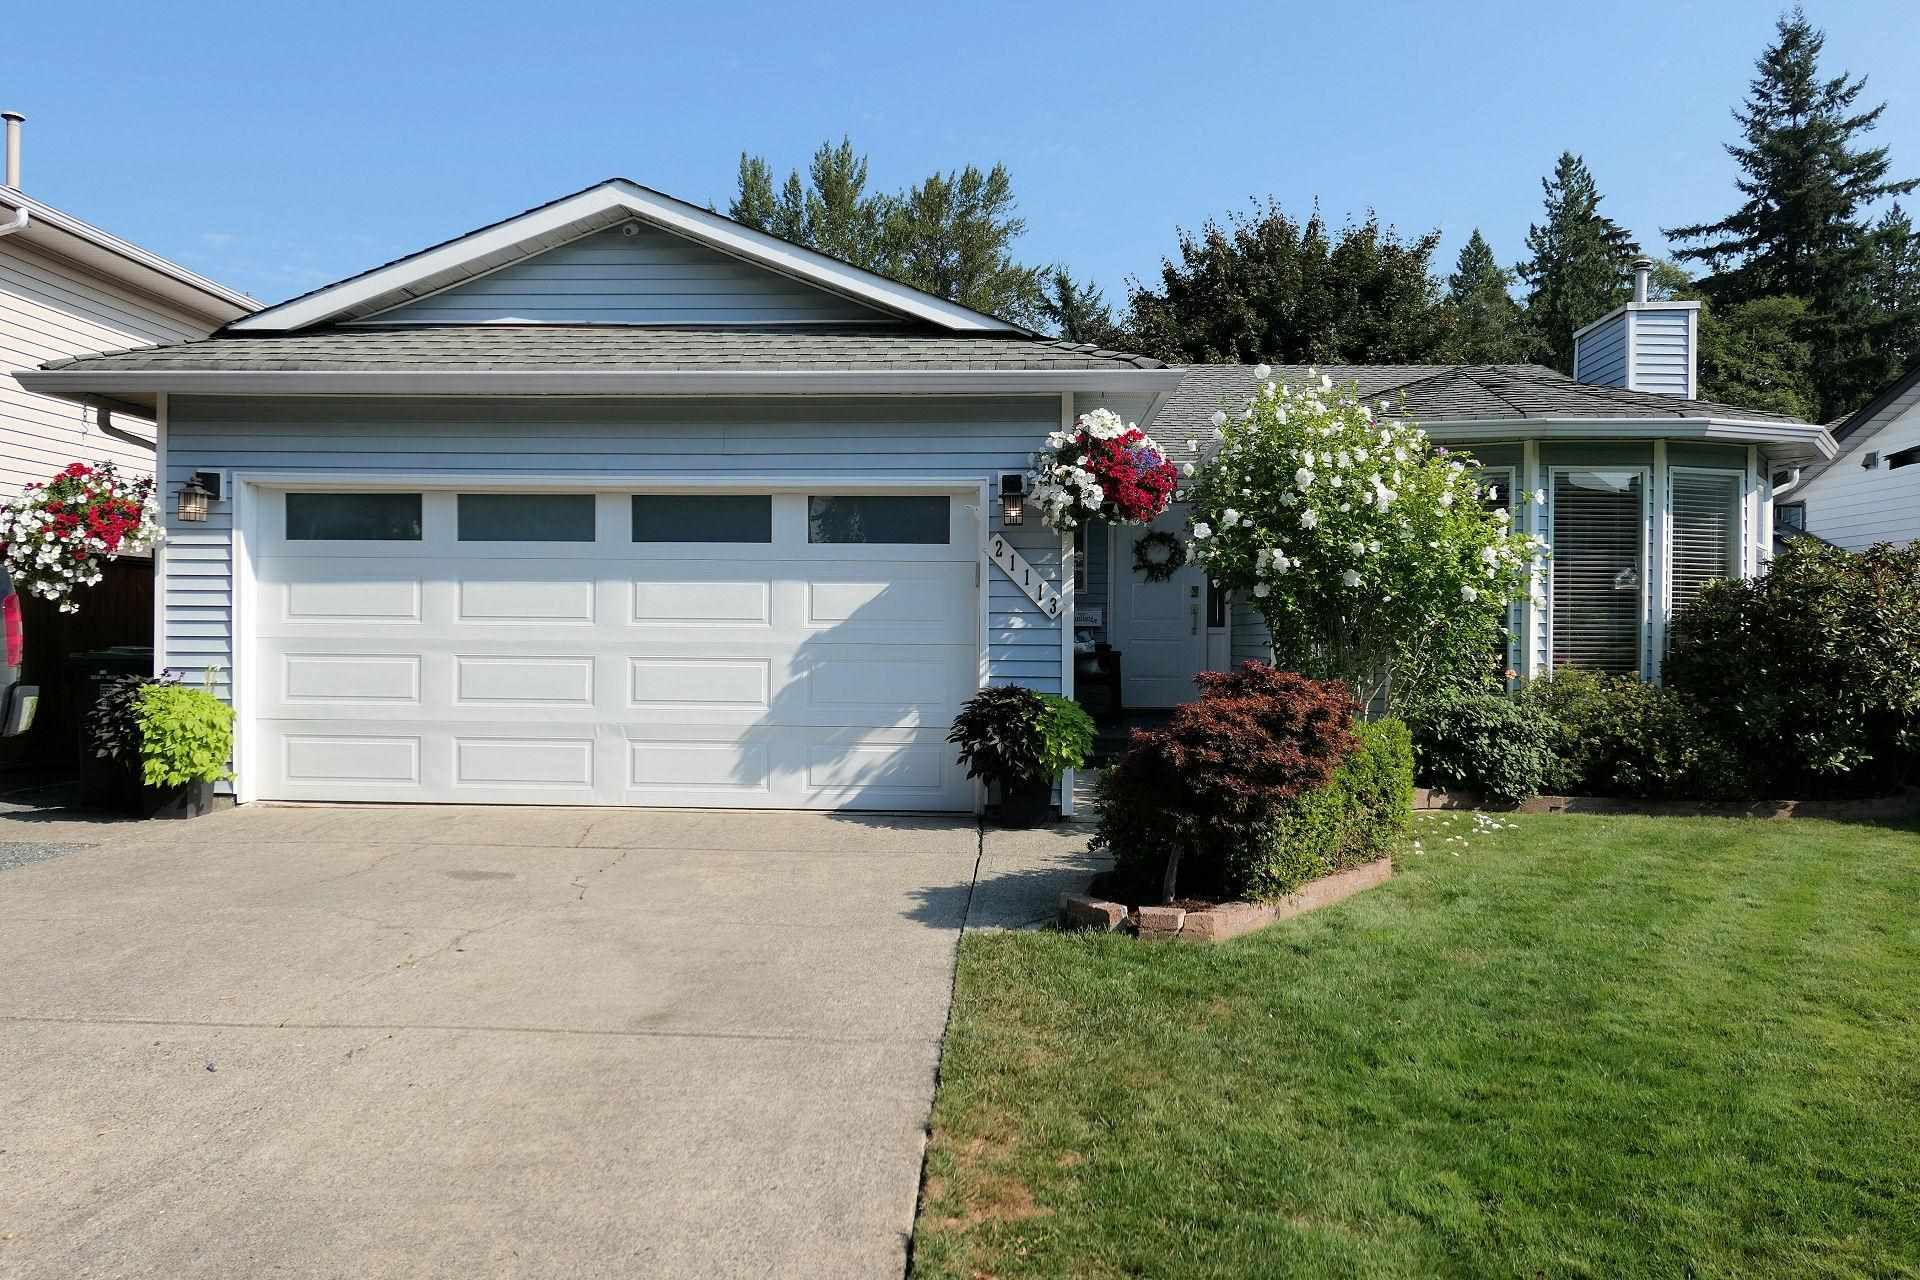 Main Photo: 21113 93 Avenue in Langley: Walnut Grove House for sale : MLS®# R2606818